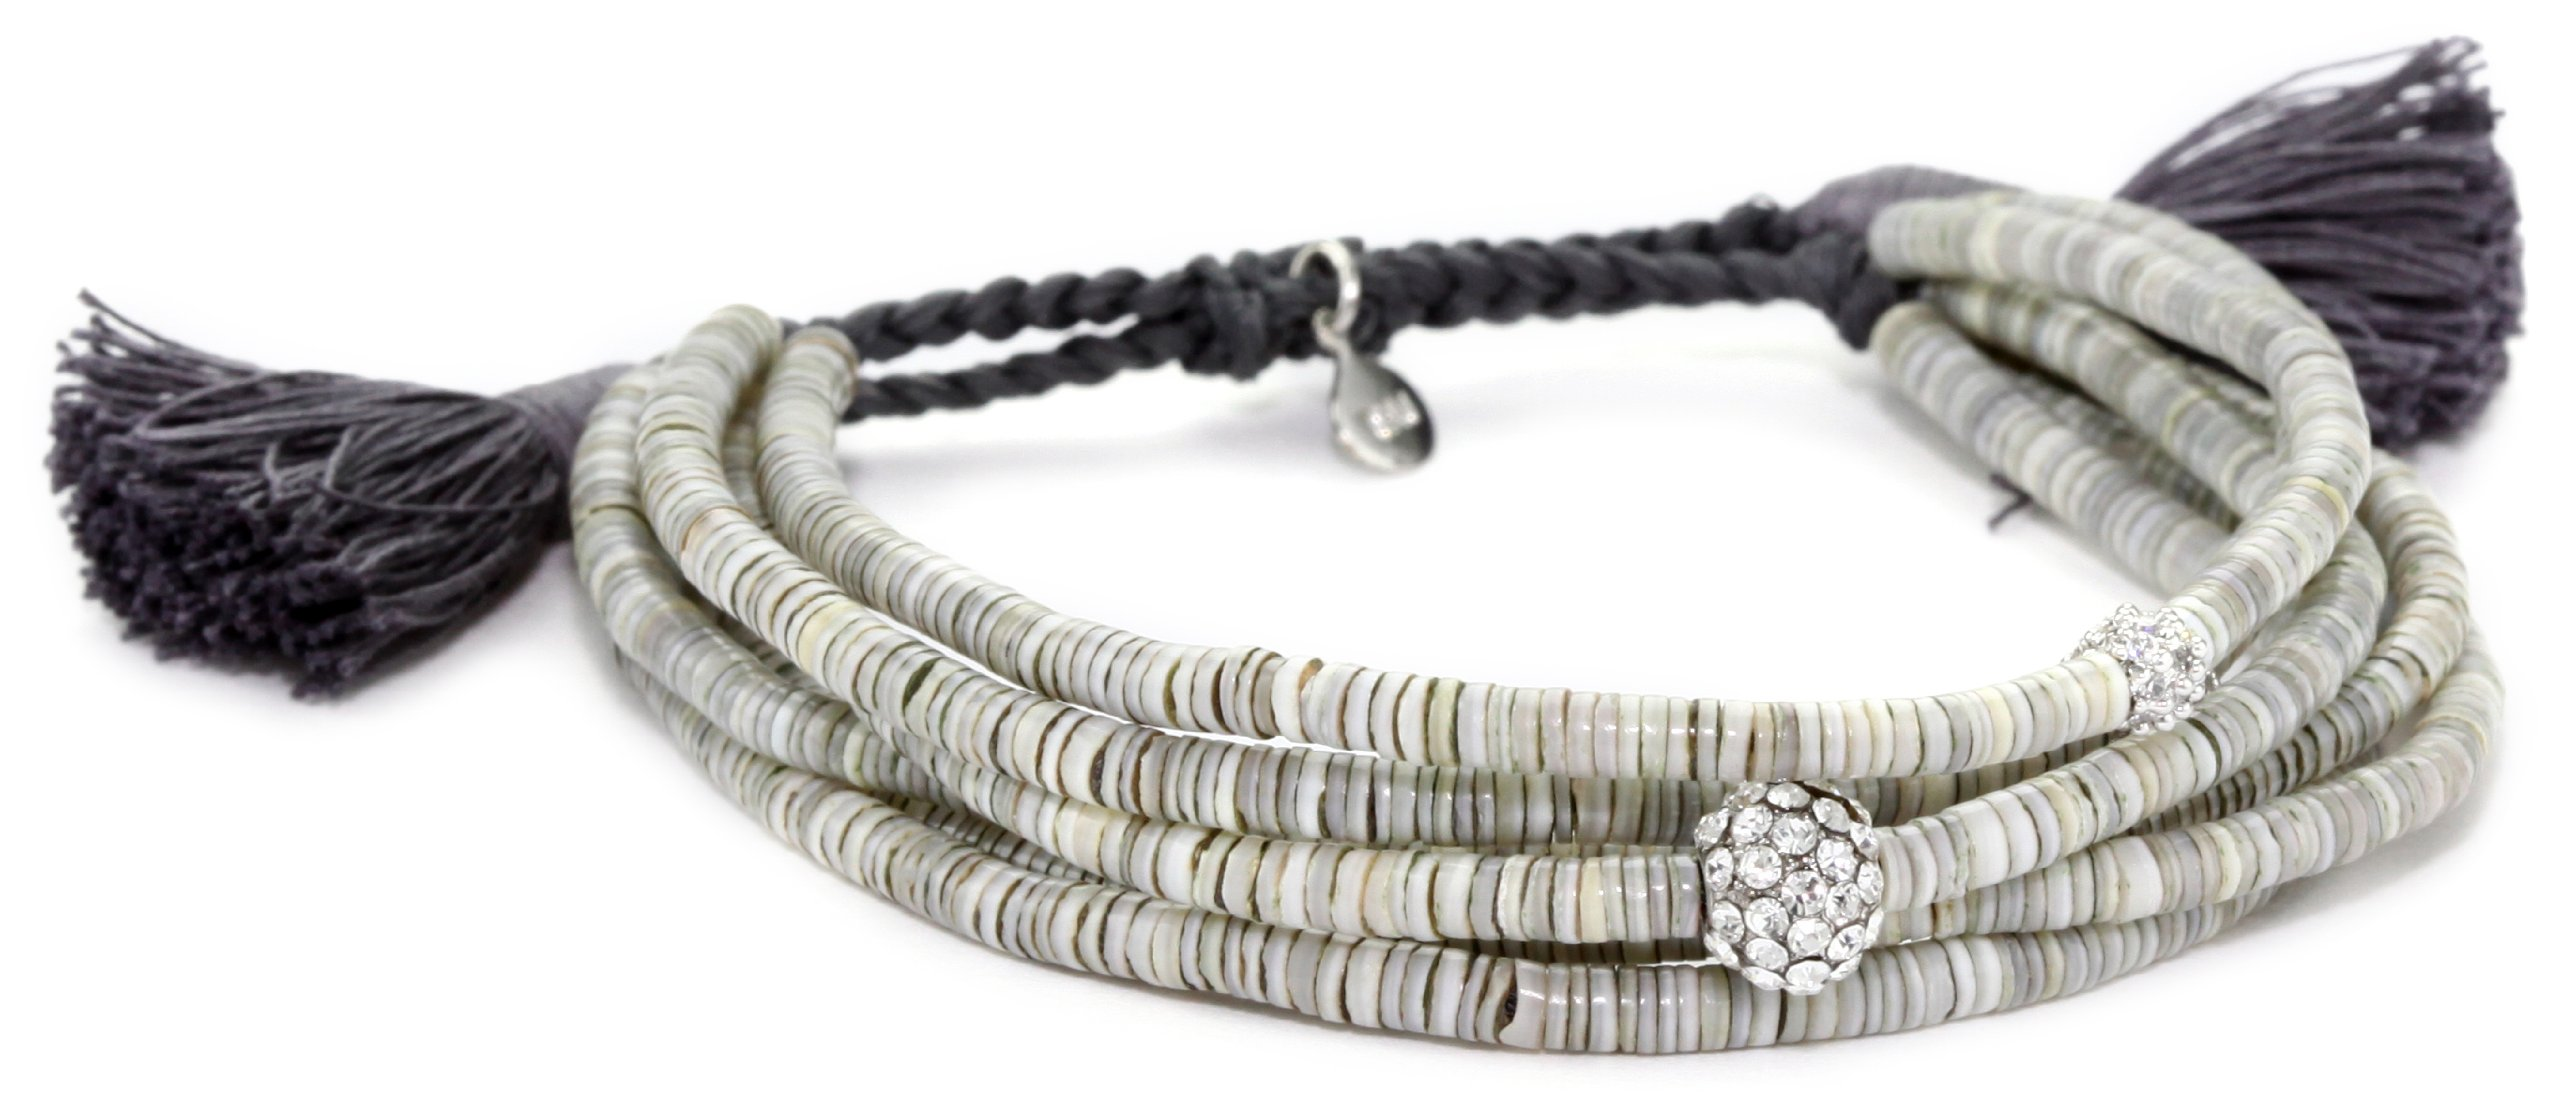 Tai Grey Shells and Crystal Beads Multi-Strand Bracelet